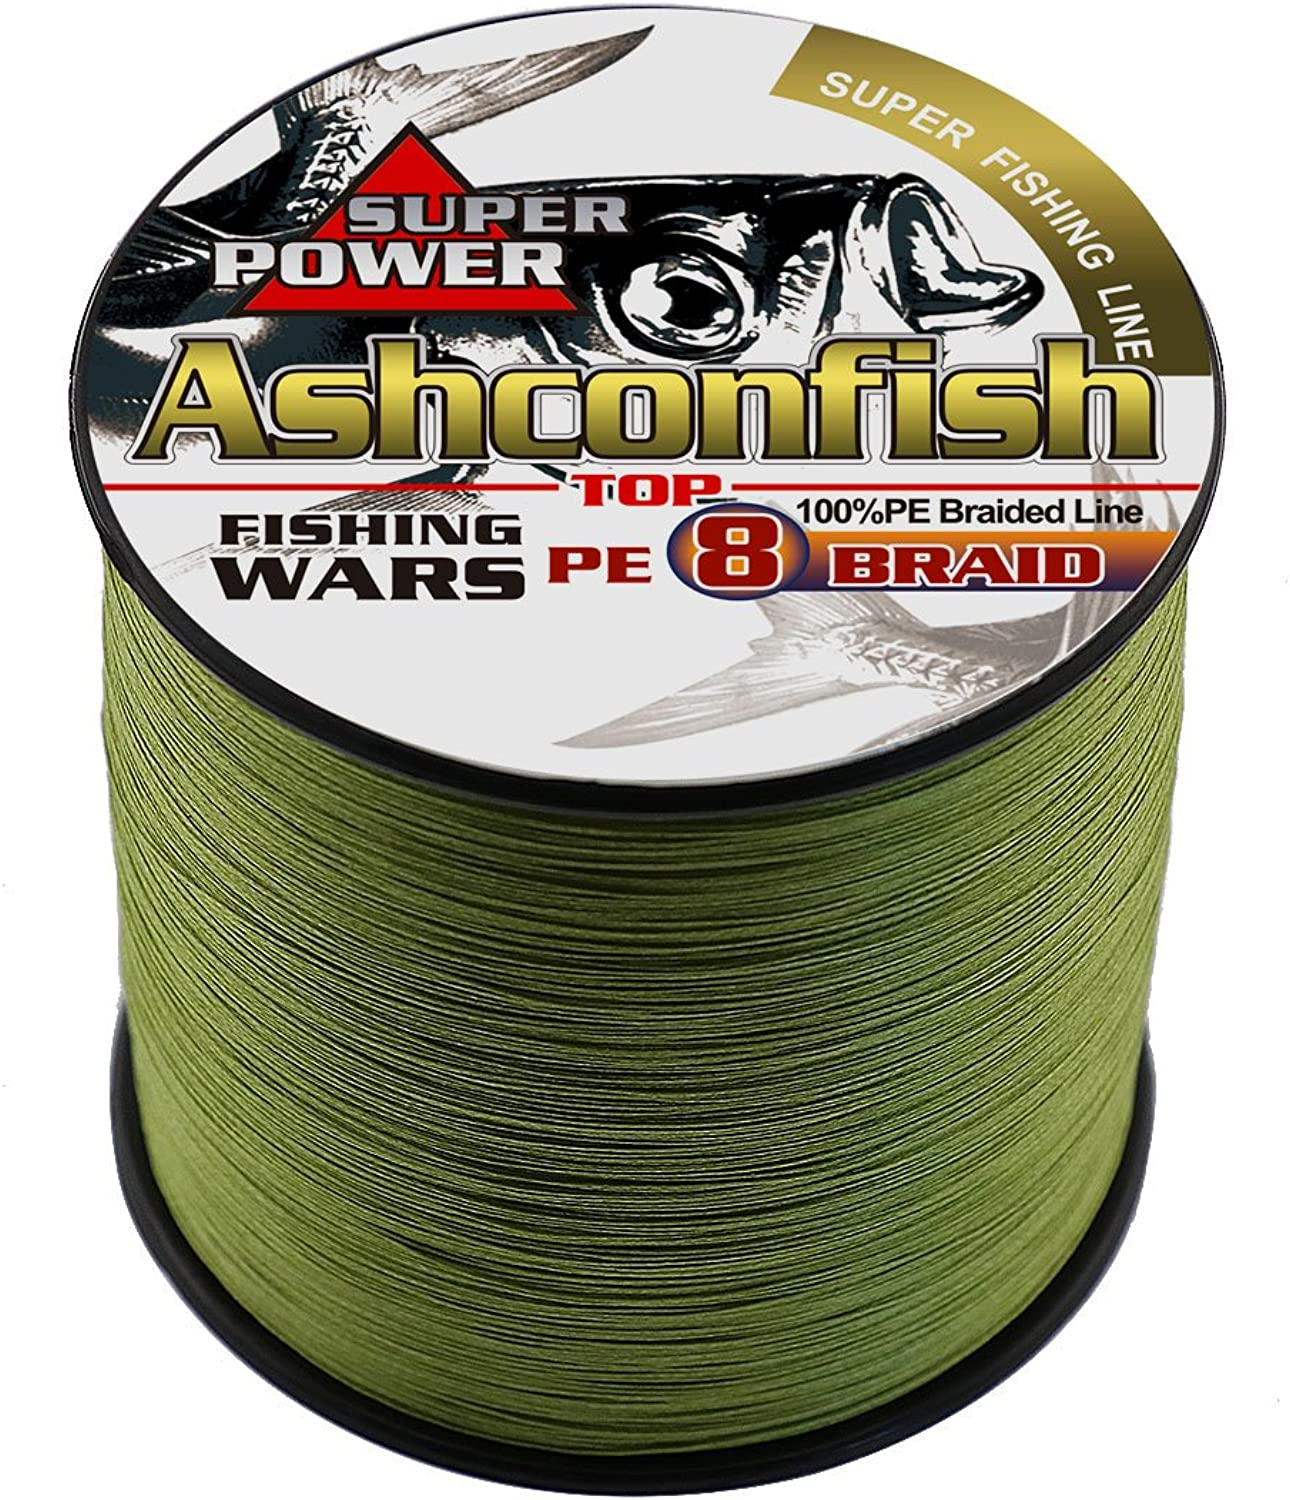 Ashconfish Braided Fishing Line8 Strands Super Strong PE Fishing Wire 1000M 1093YardsAbrasion Resistant Braided LinesZero StretchSmall Diameter Fishing Thread